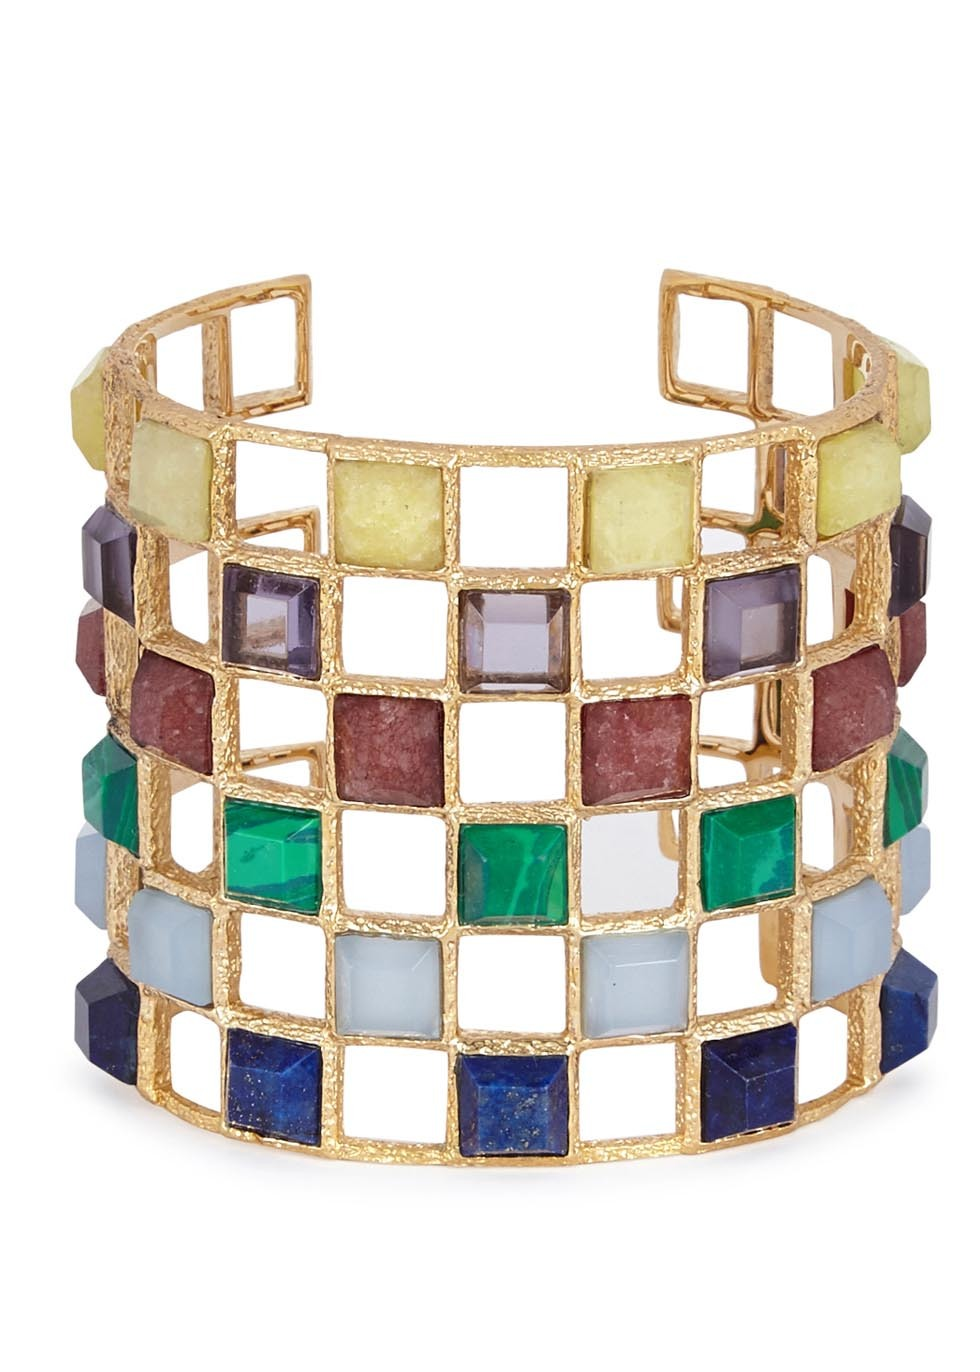 Abstract Mughal Lattice Gold Plated Bracelet - predominant colour: gold; occasions: evening, occasion, creative work; style: cuff; size: large/oversized; material: chain/metal; finish: metallic; embellishment: beading; multicoloured: multicoloured; season: a/w 2016; wardrobe: highlight